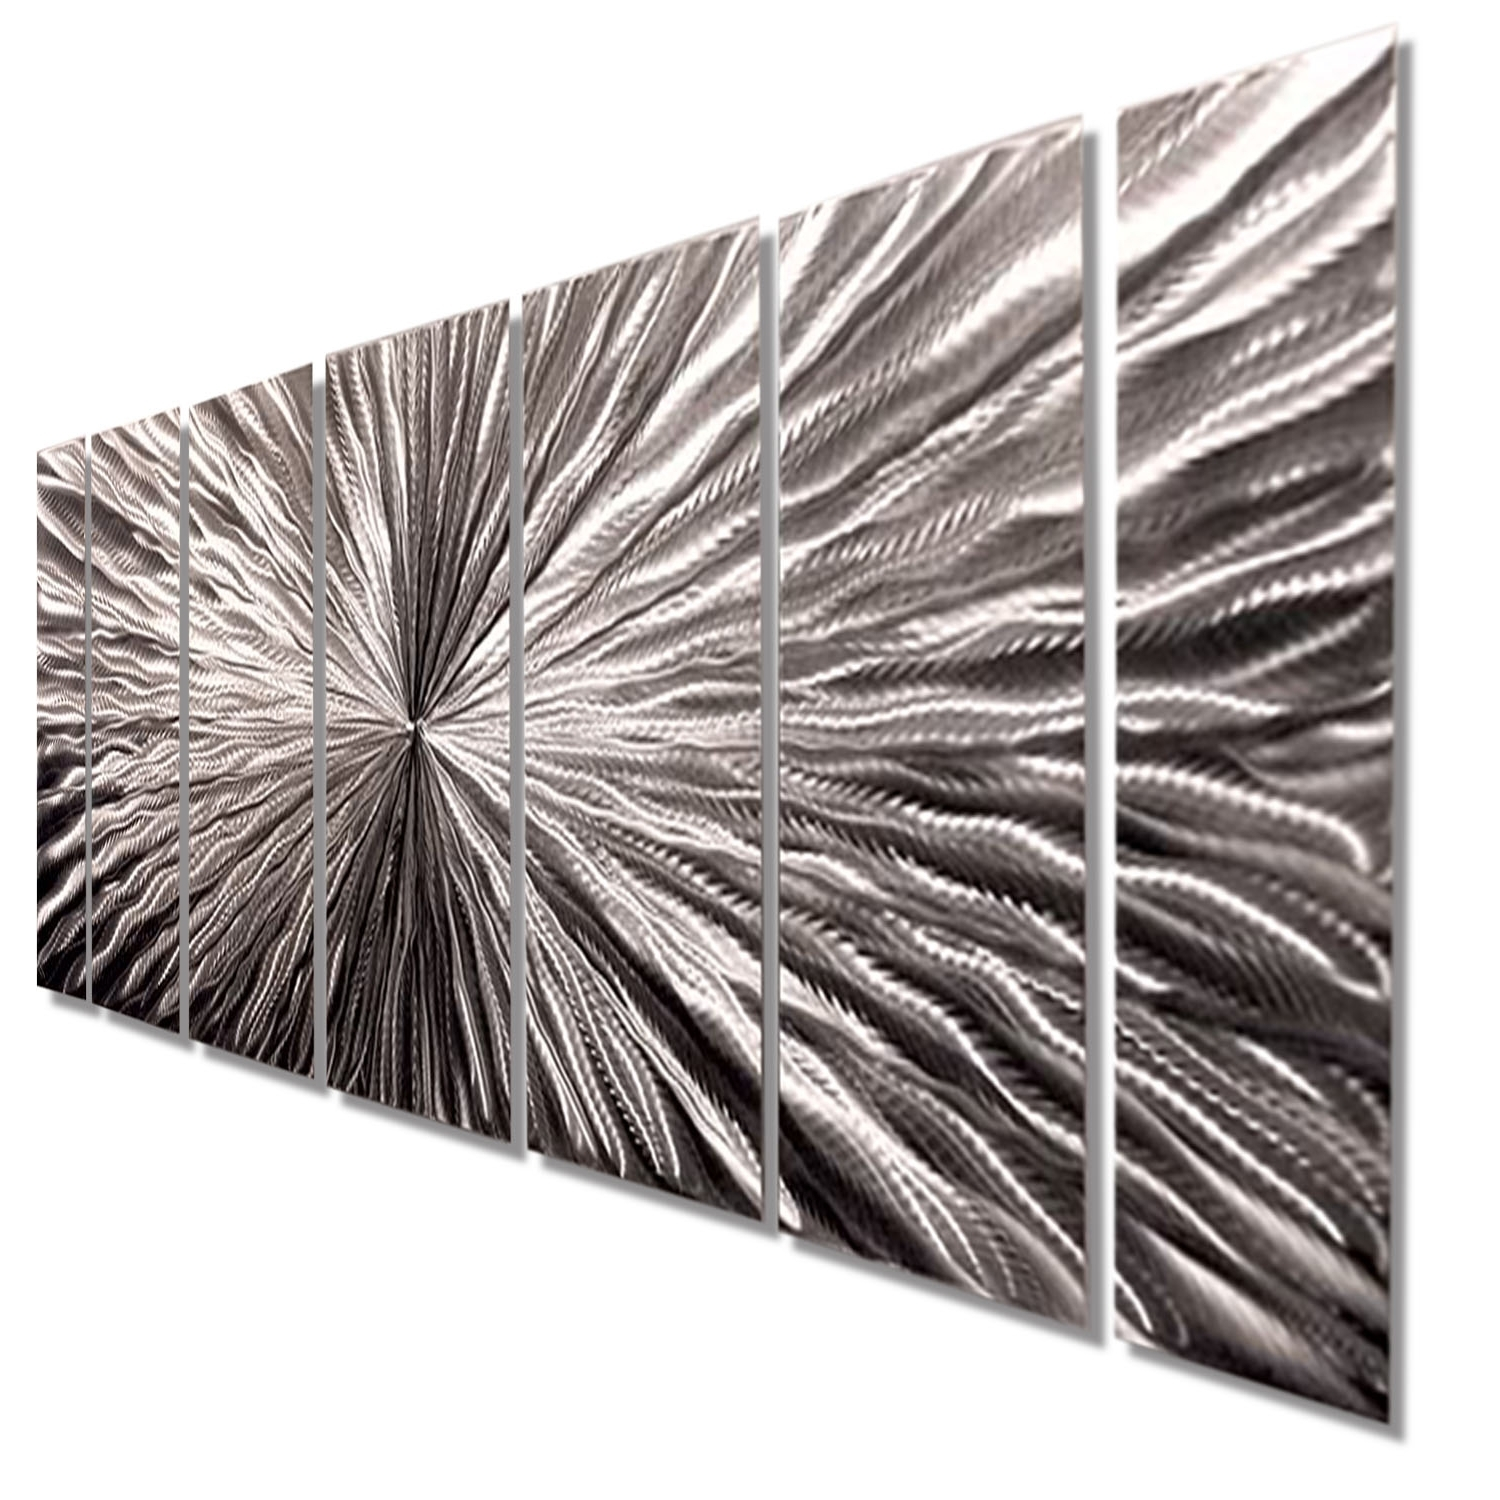 2018 Silver Metal Wall Art Regarding Radiant Velocity – Silver Contemporary Metal Wall Artjon Allen (View 2 of 15)